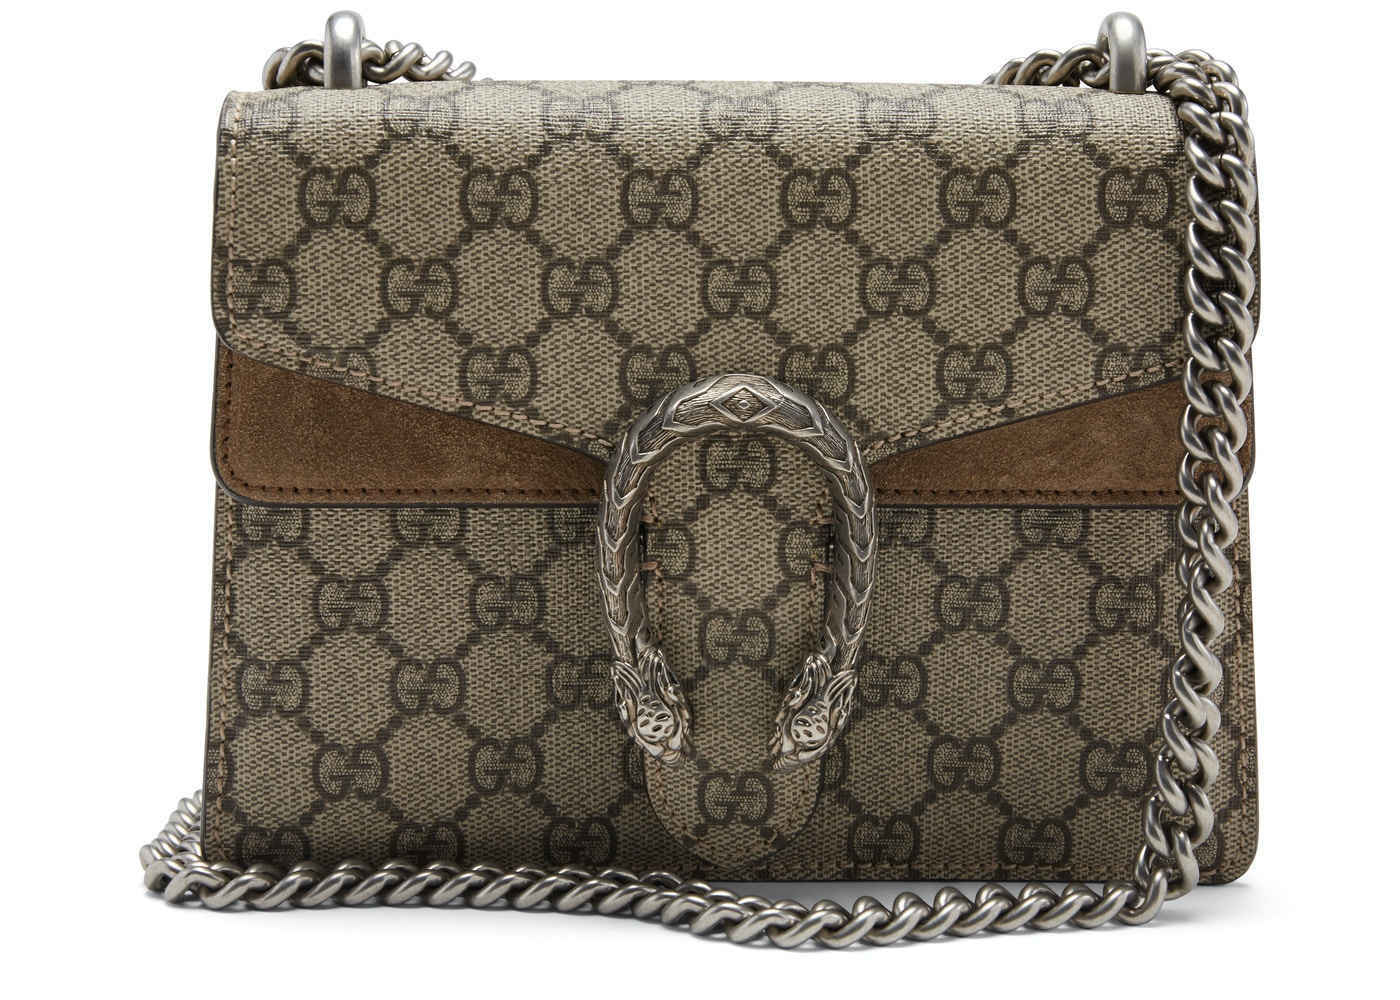 Gucci Dionysus Shoulder Bag Gg Supreme Mini Brown